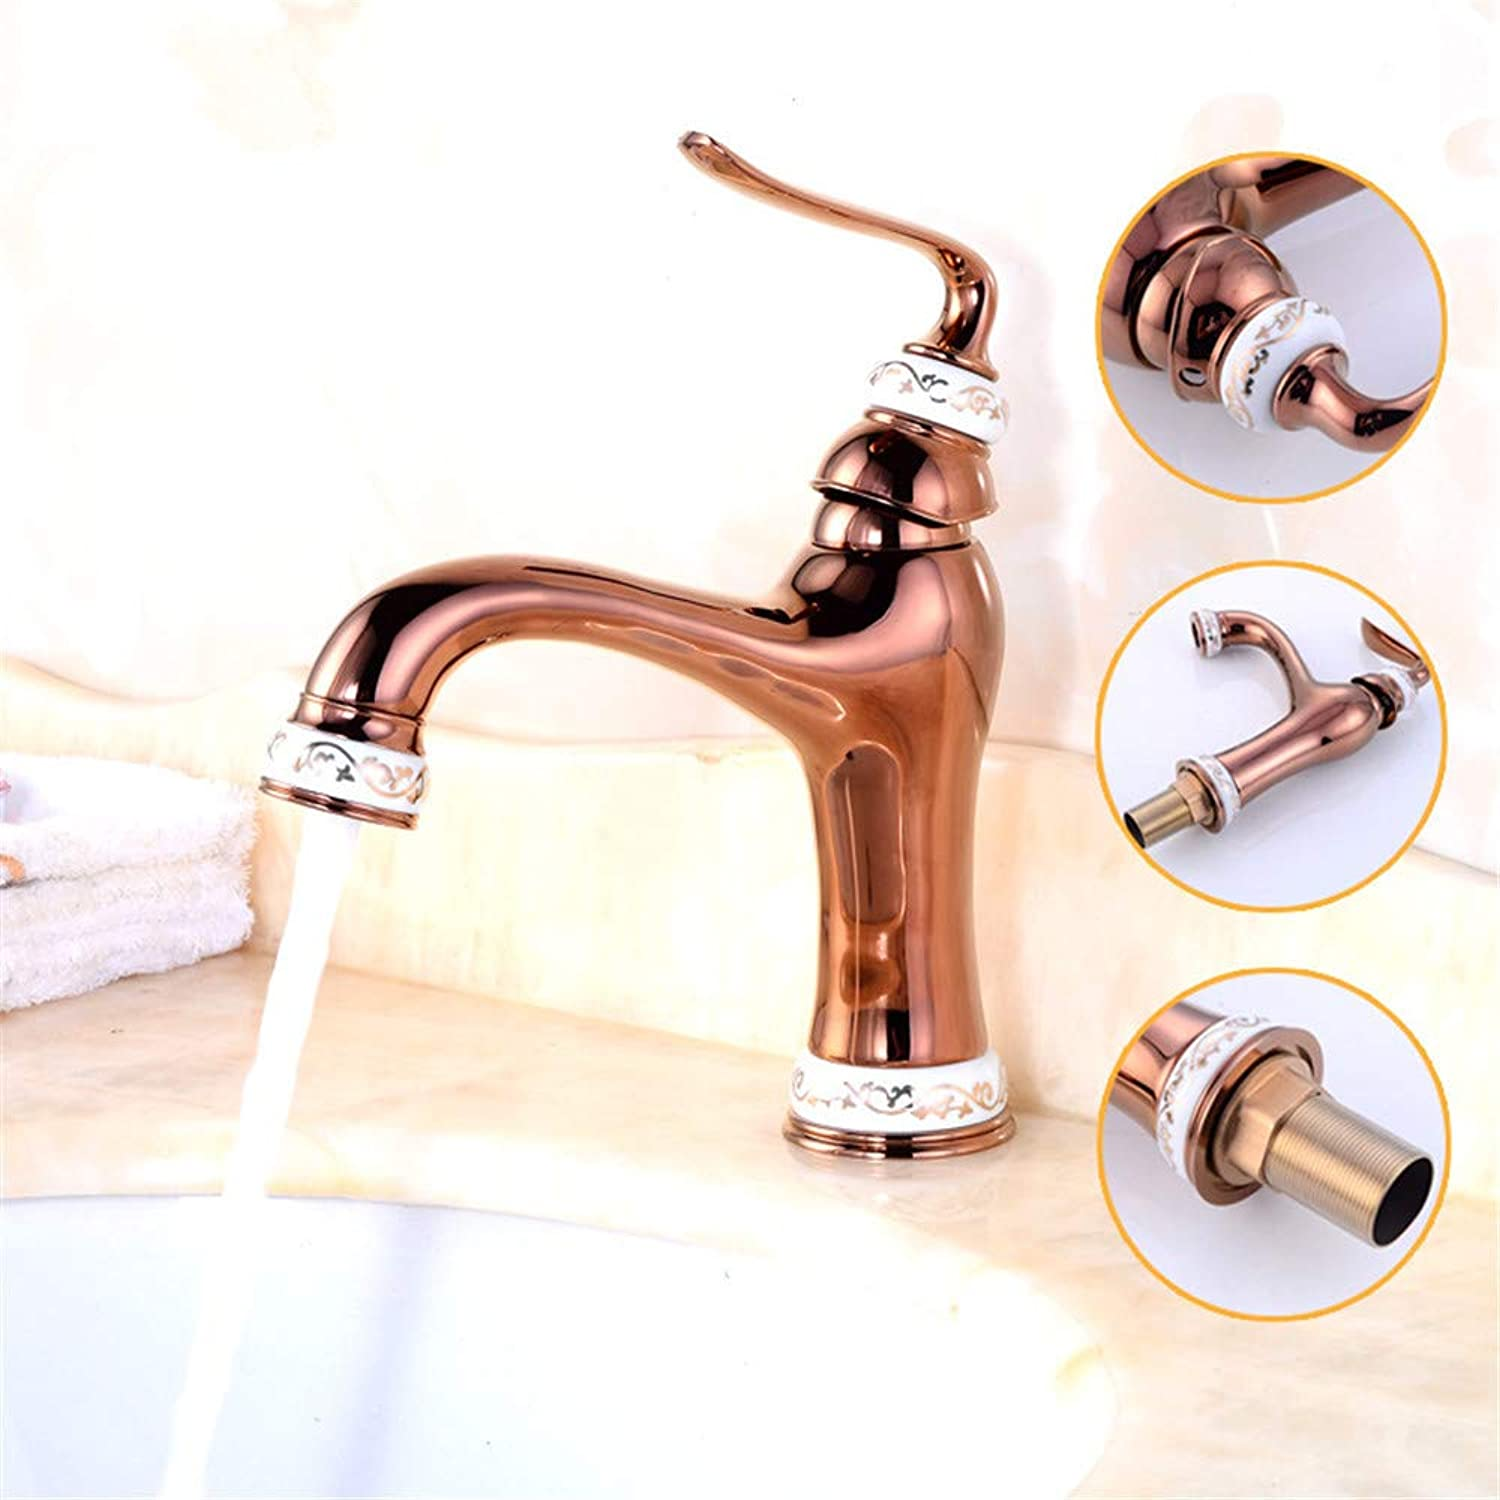 XPYFaucet Faucet Tap Taps European all-copper gold-plated jade bluee and white porcelain basin hot and cold water single hole single handle